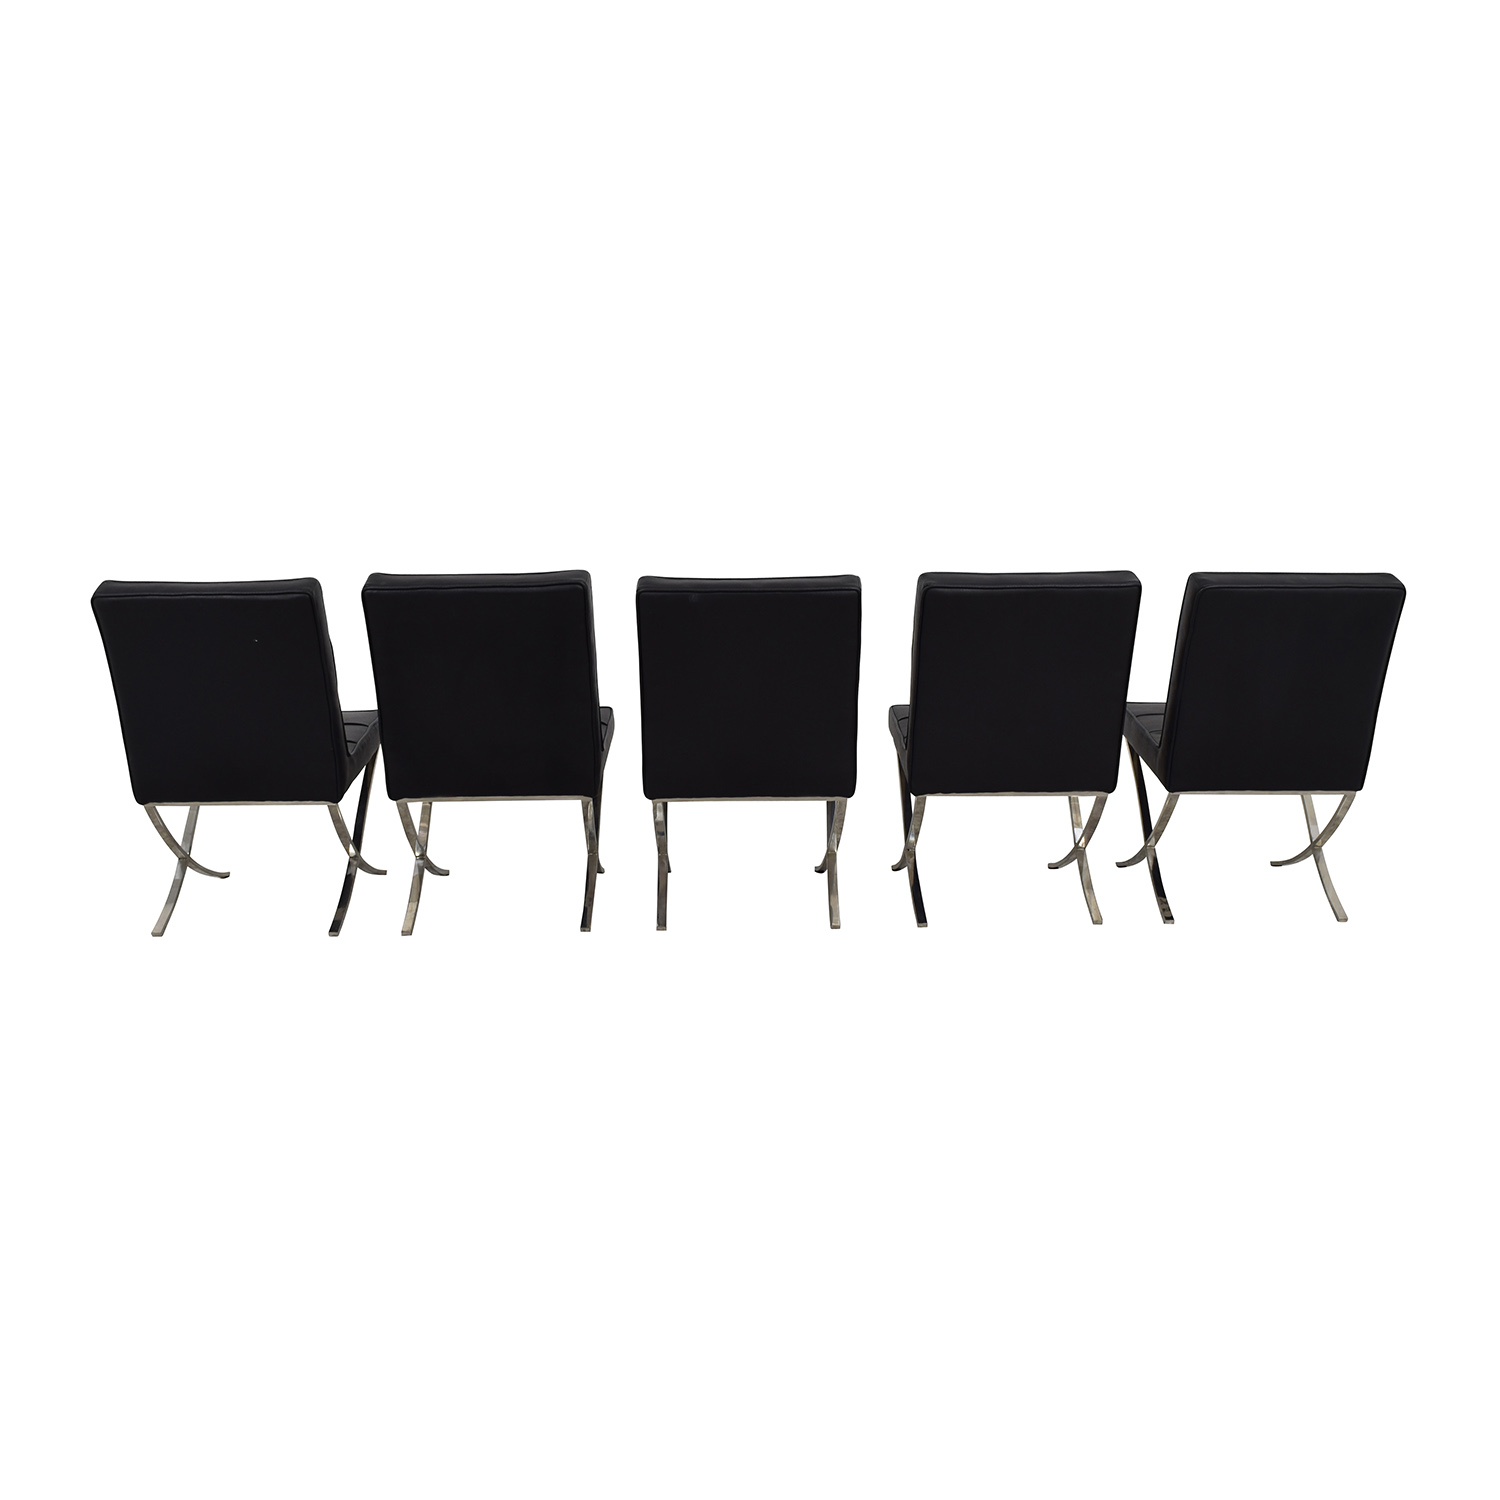 shop West Elm Black Tufted Leather Chairs West Elm Chairs